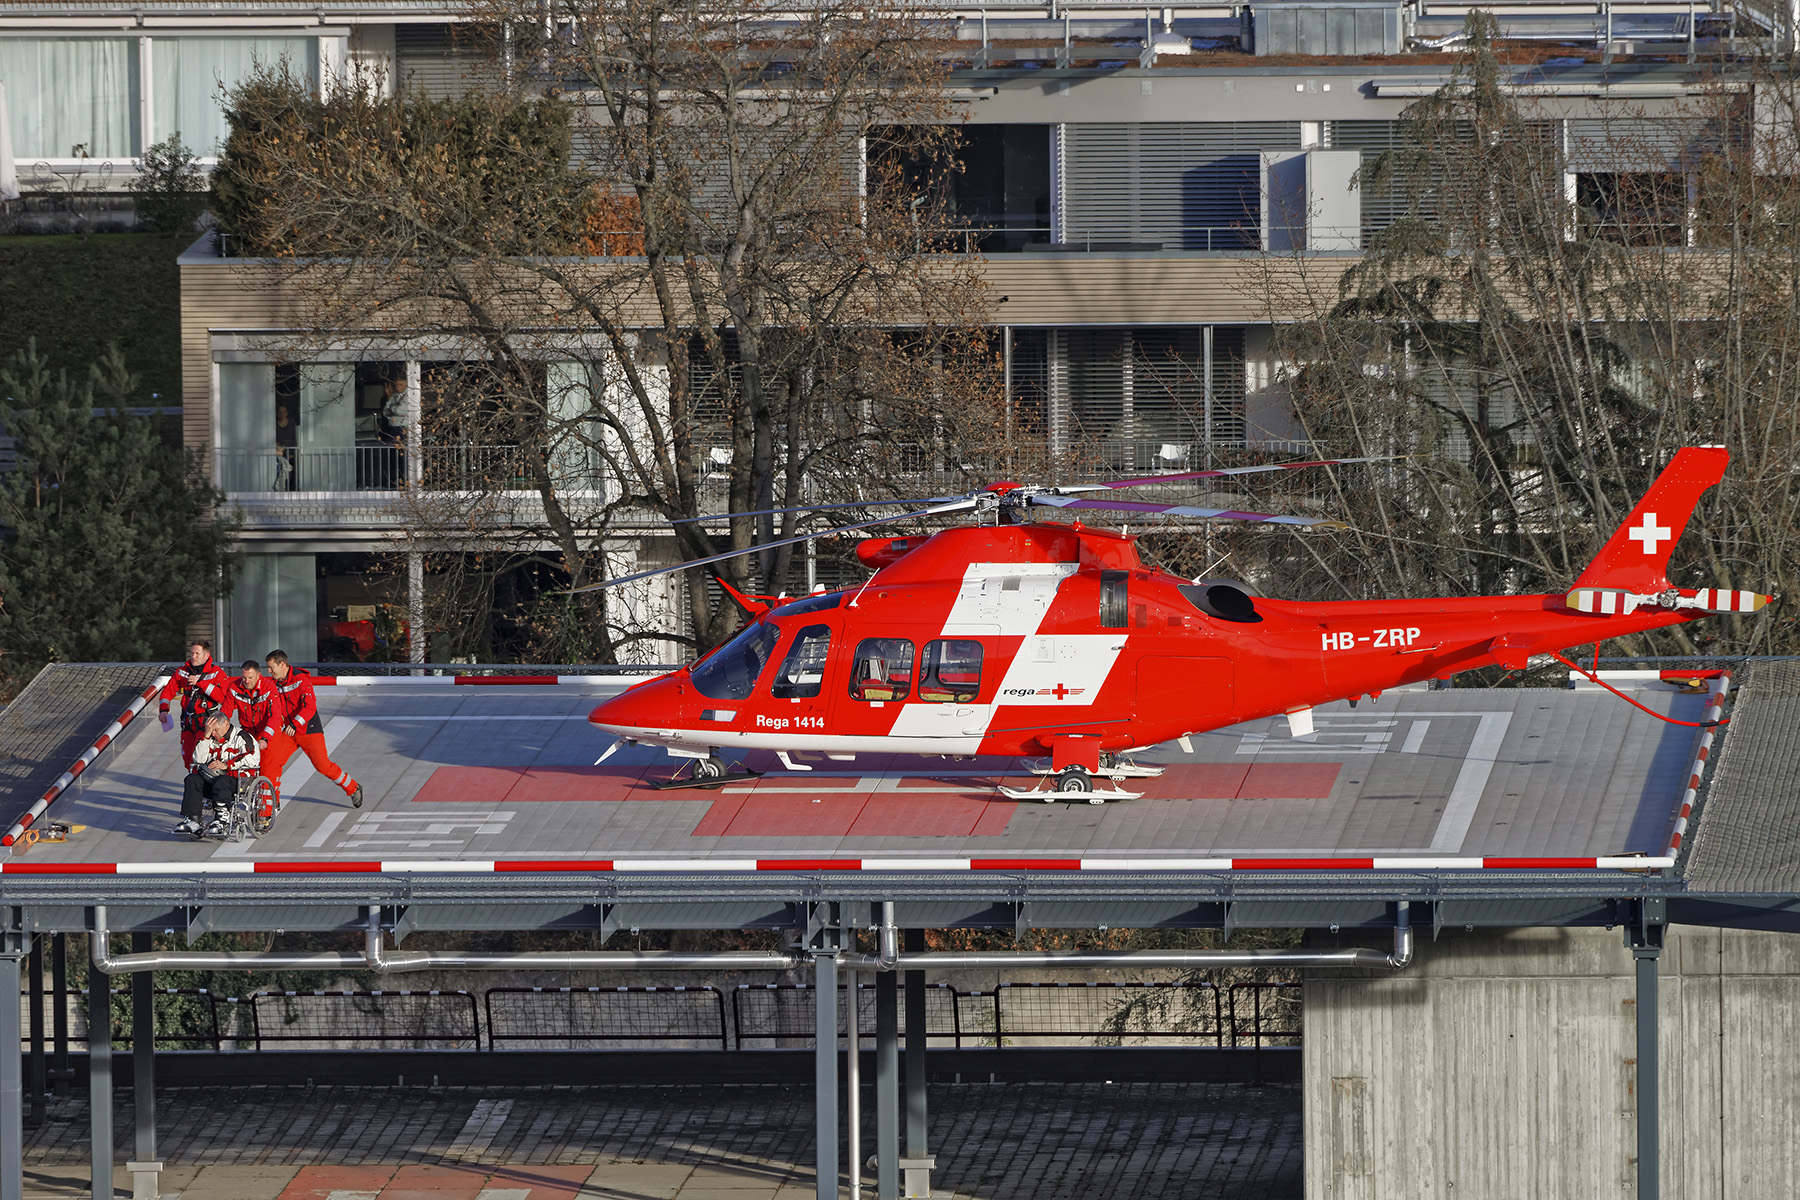 An ambulance helicopter in Switzerland